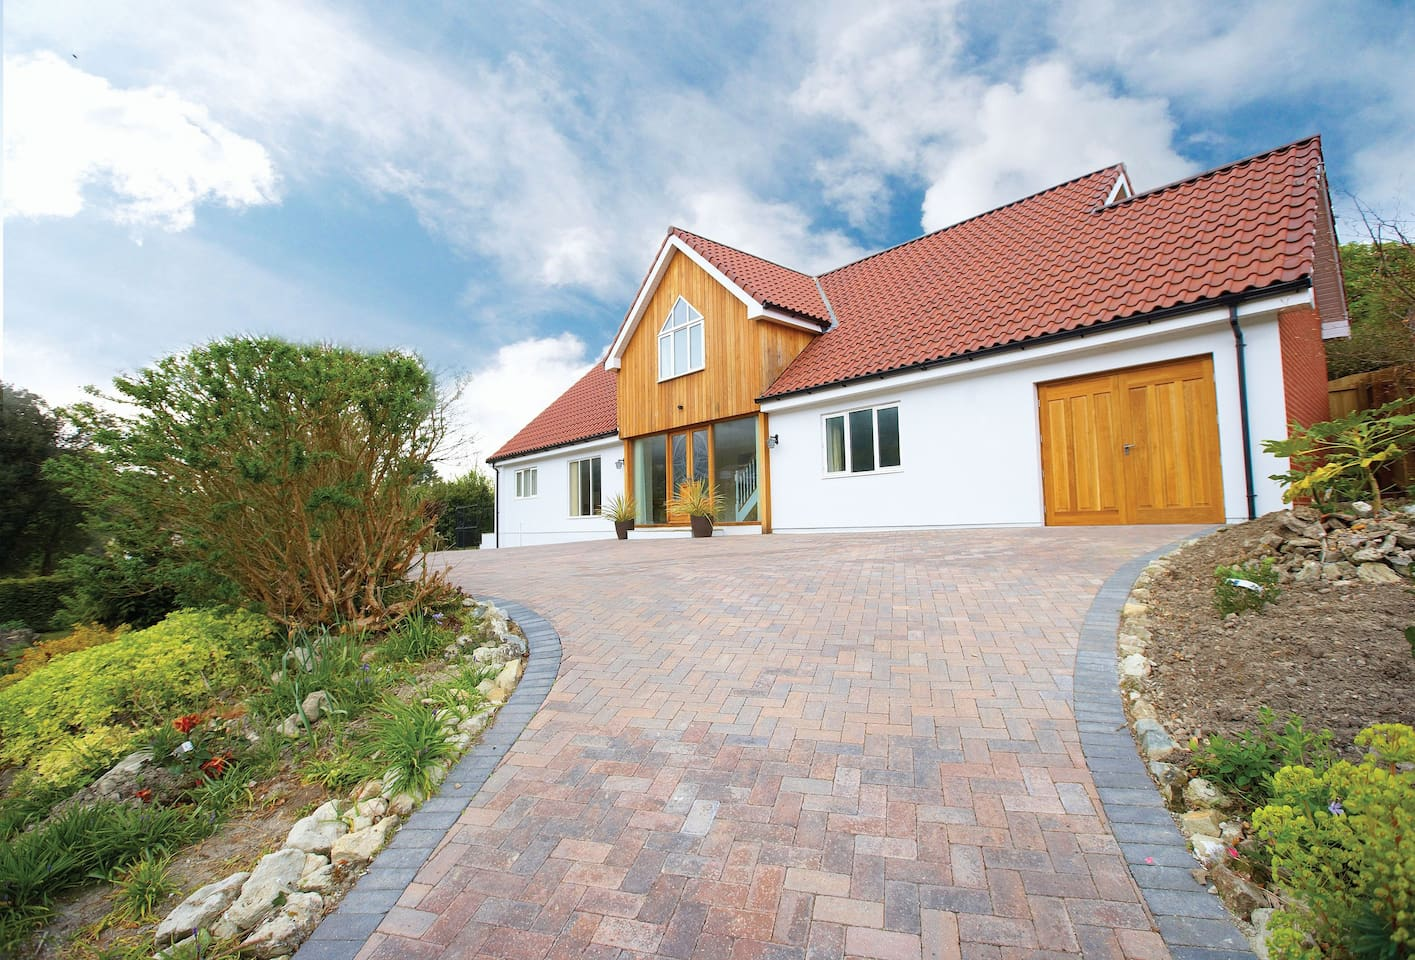 The Haven is a luxuriously appointed detached holiday house located in the south of the Isle of Wight within an area known for its Mediterranean-style climate and areas of natural beauty